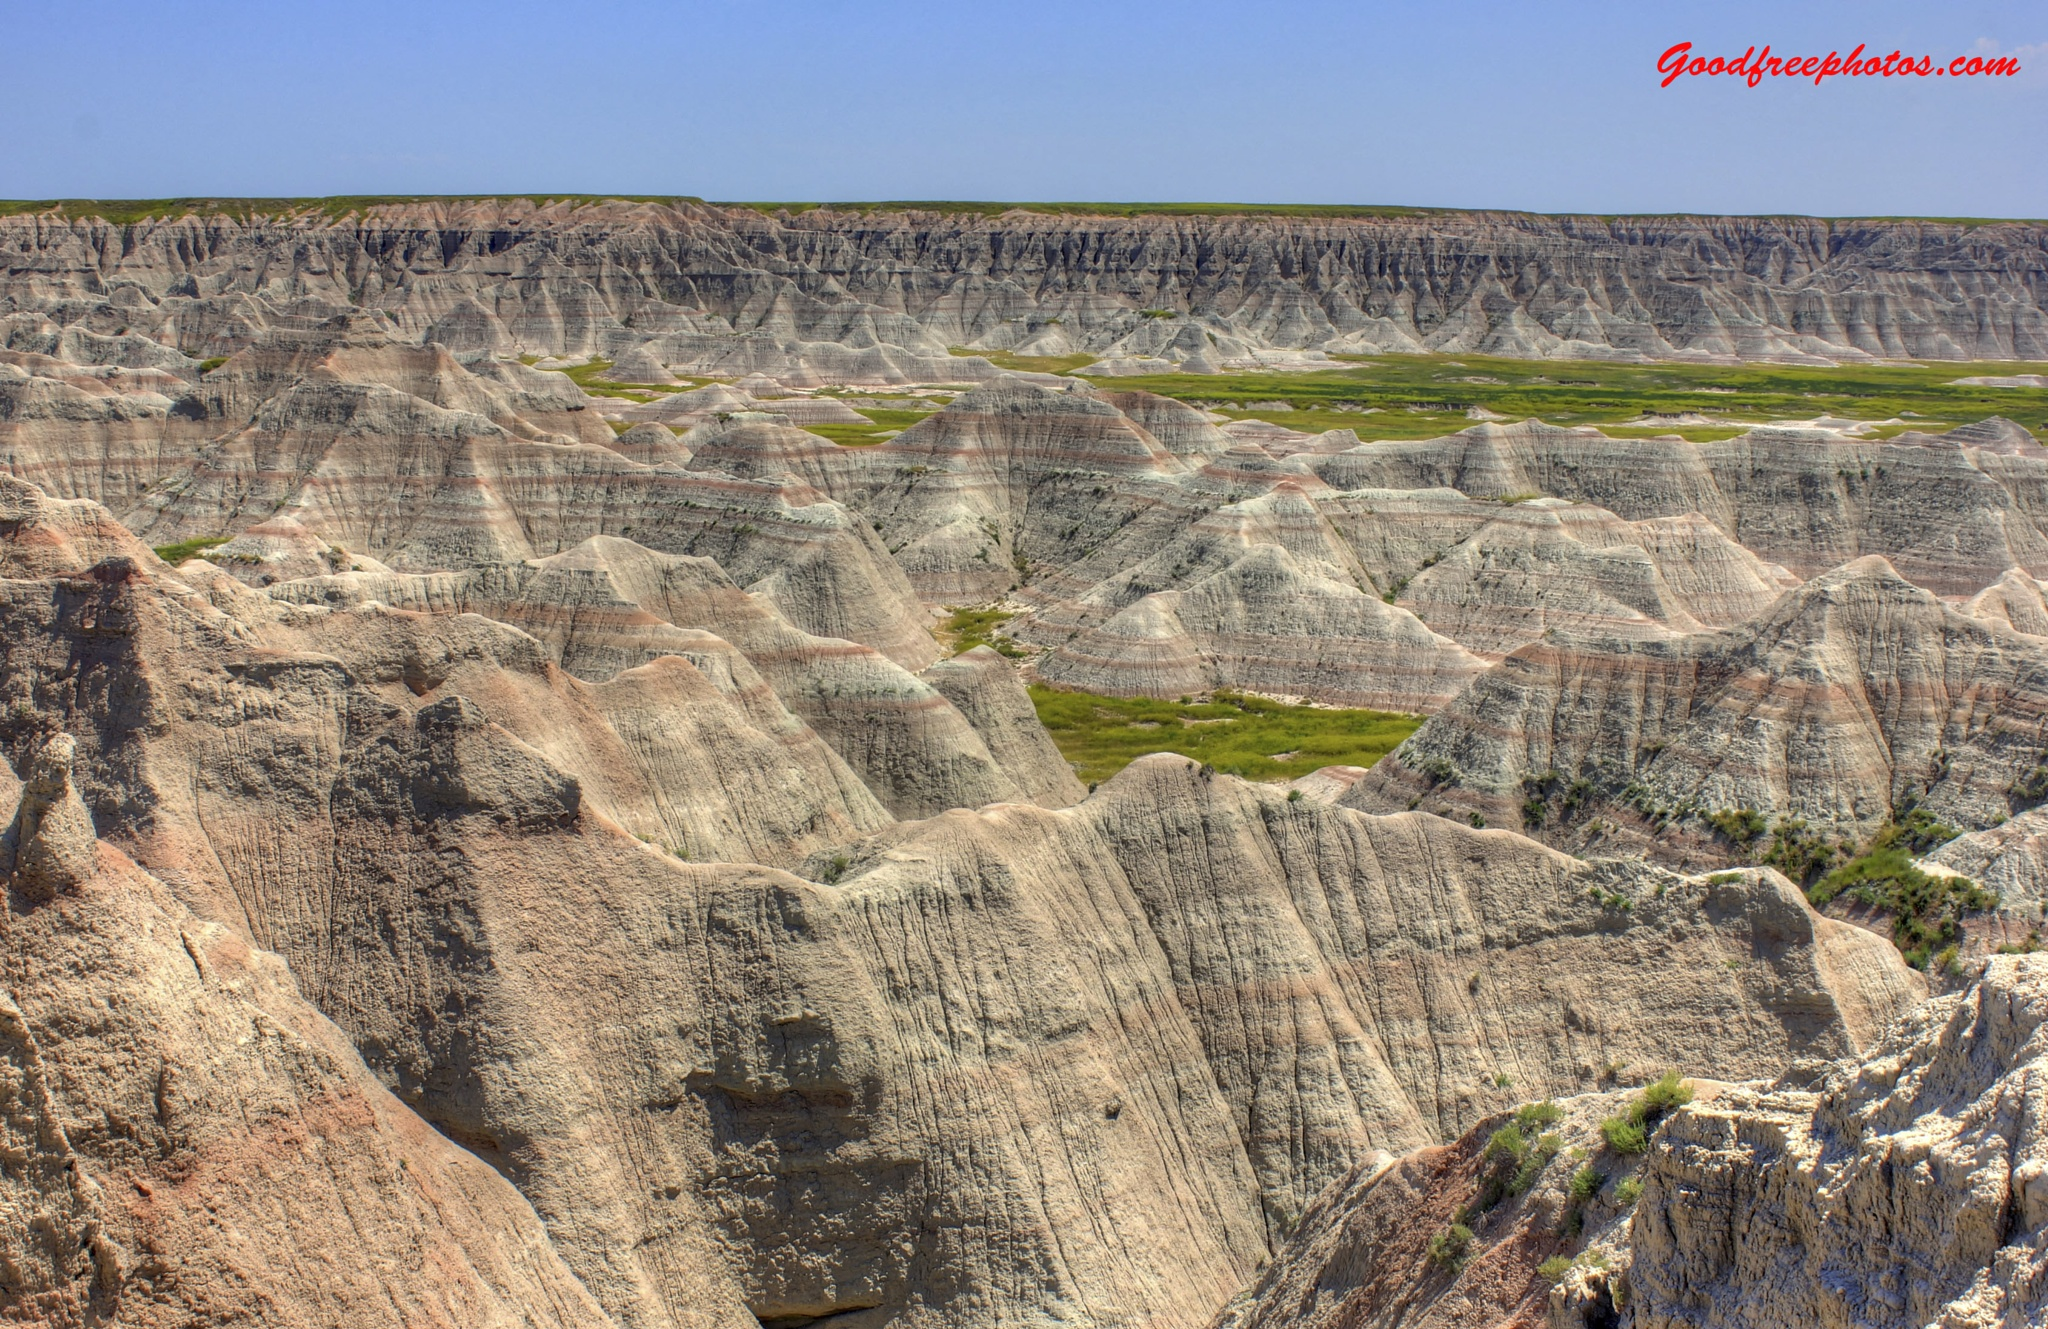 Landscape of the Badlands by Archbob